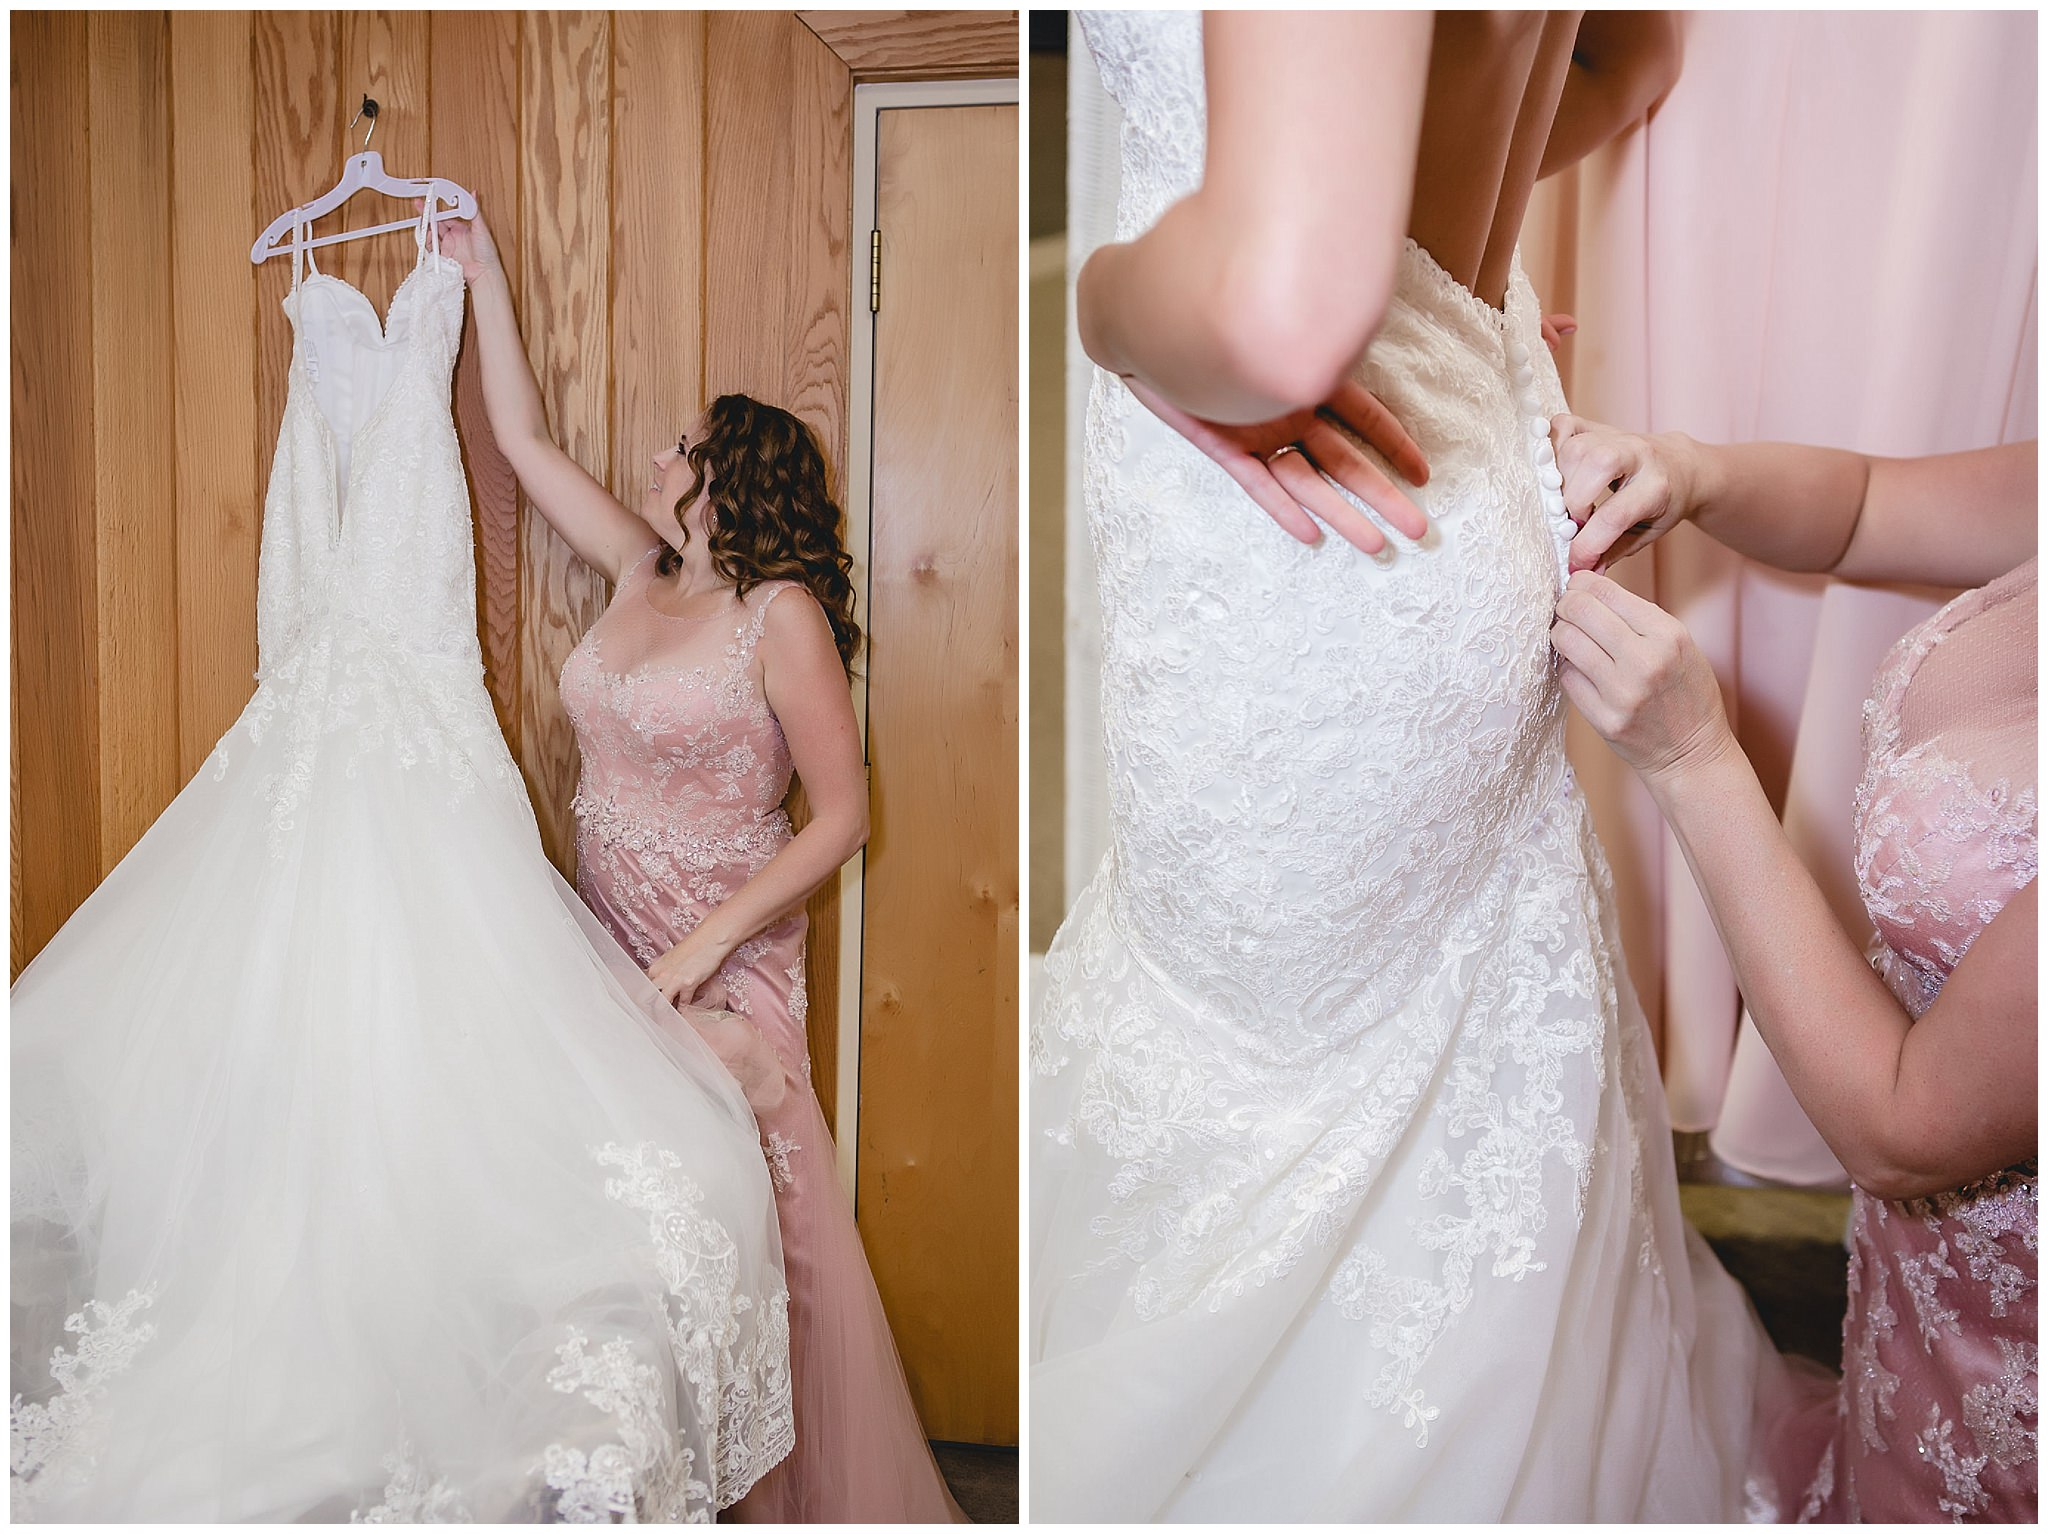 Mother of the bride helps bride into her lace wedding dress at Hidden Valley Resort